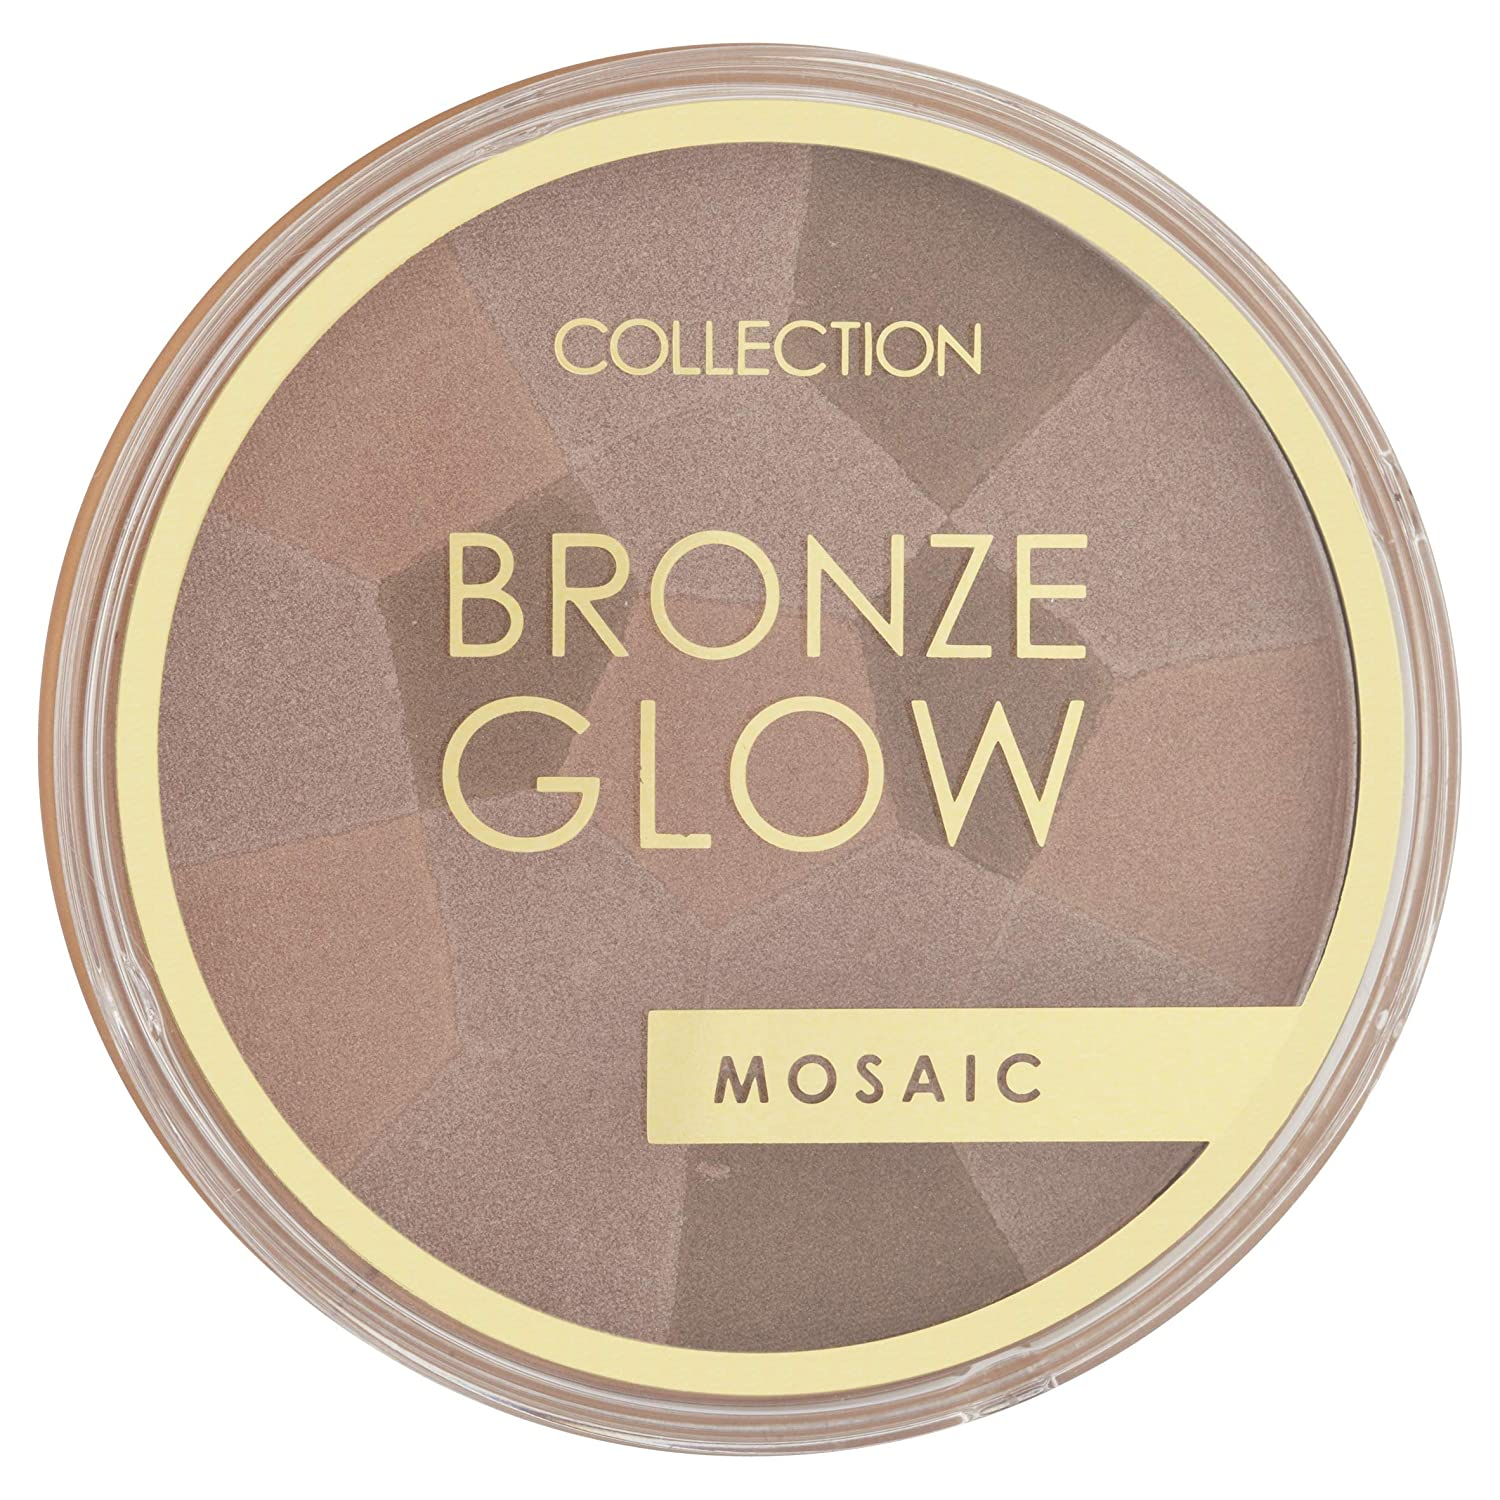 COLLECTION Bronze Glow Mosaic, Sunkissed Number 1 15 g LF BEAUTY UK 100610